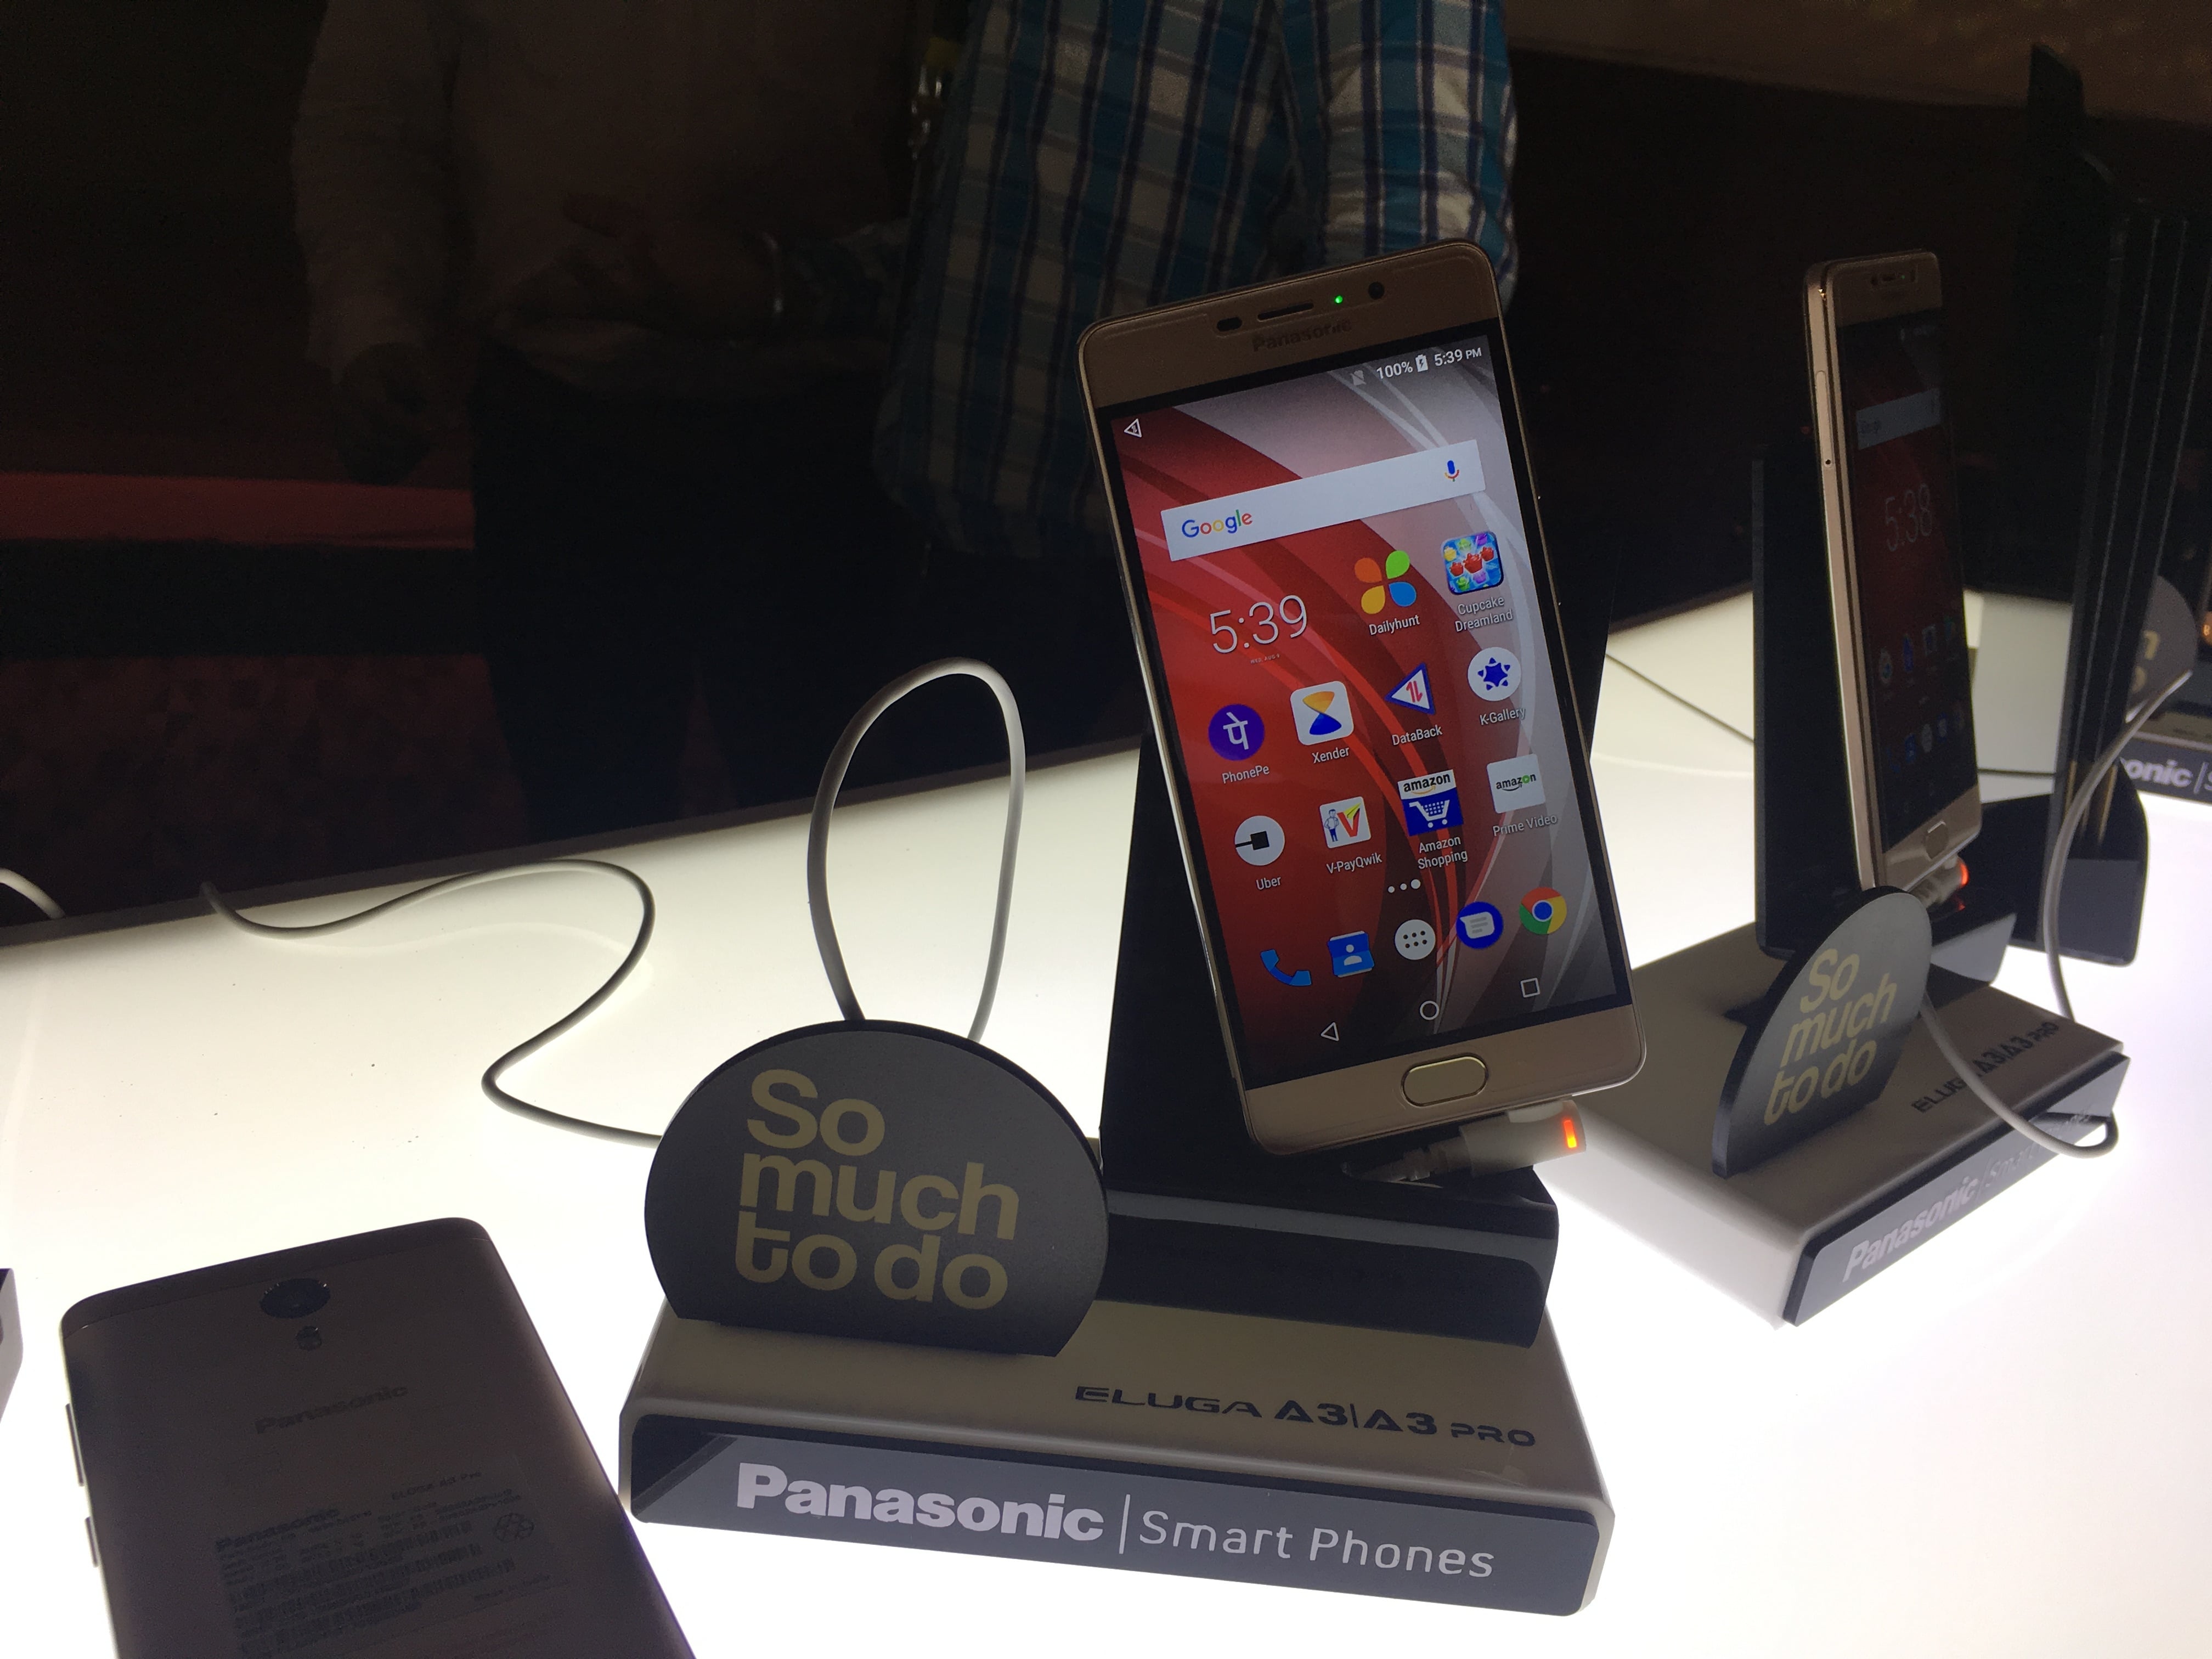 Panasonic Launches Eluga A3 First Look